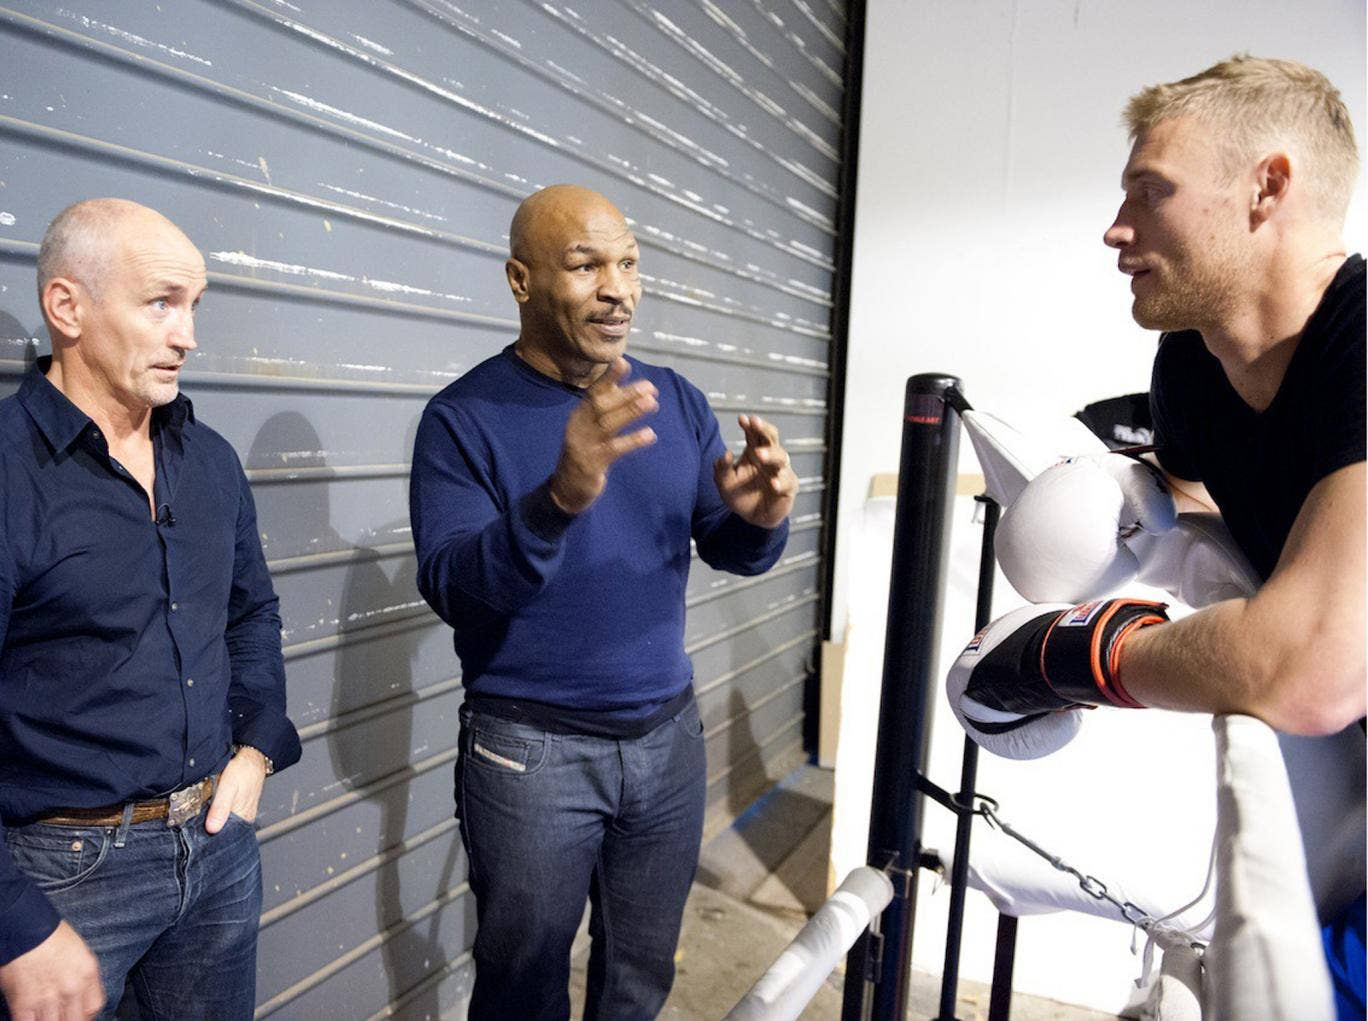 Ring the changes: Andrew Flintoff and his trainer Barry McGuigan (far left) receive some advice from Mike Tyson